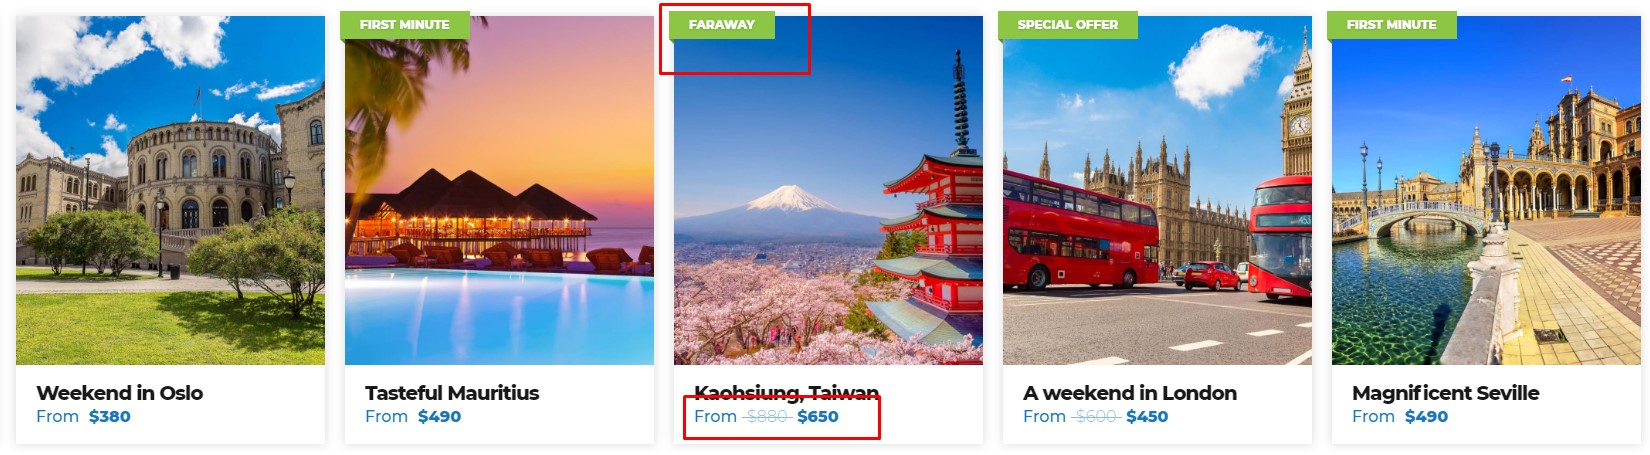 https://documentation.bold-themes.com/travelicious/wp-content/uploads/sites/37/2018/10/tour-old-price-1.jpg